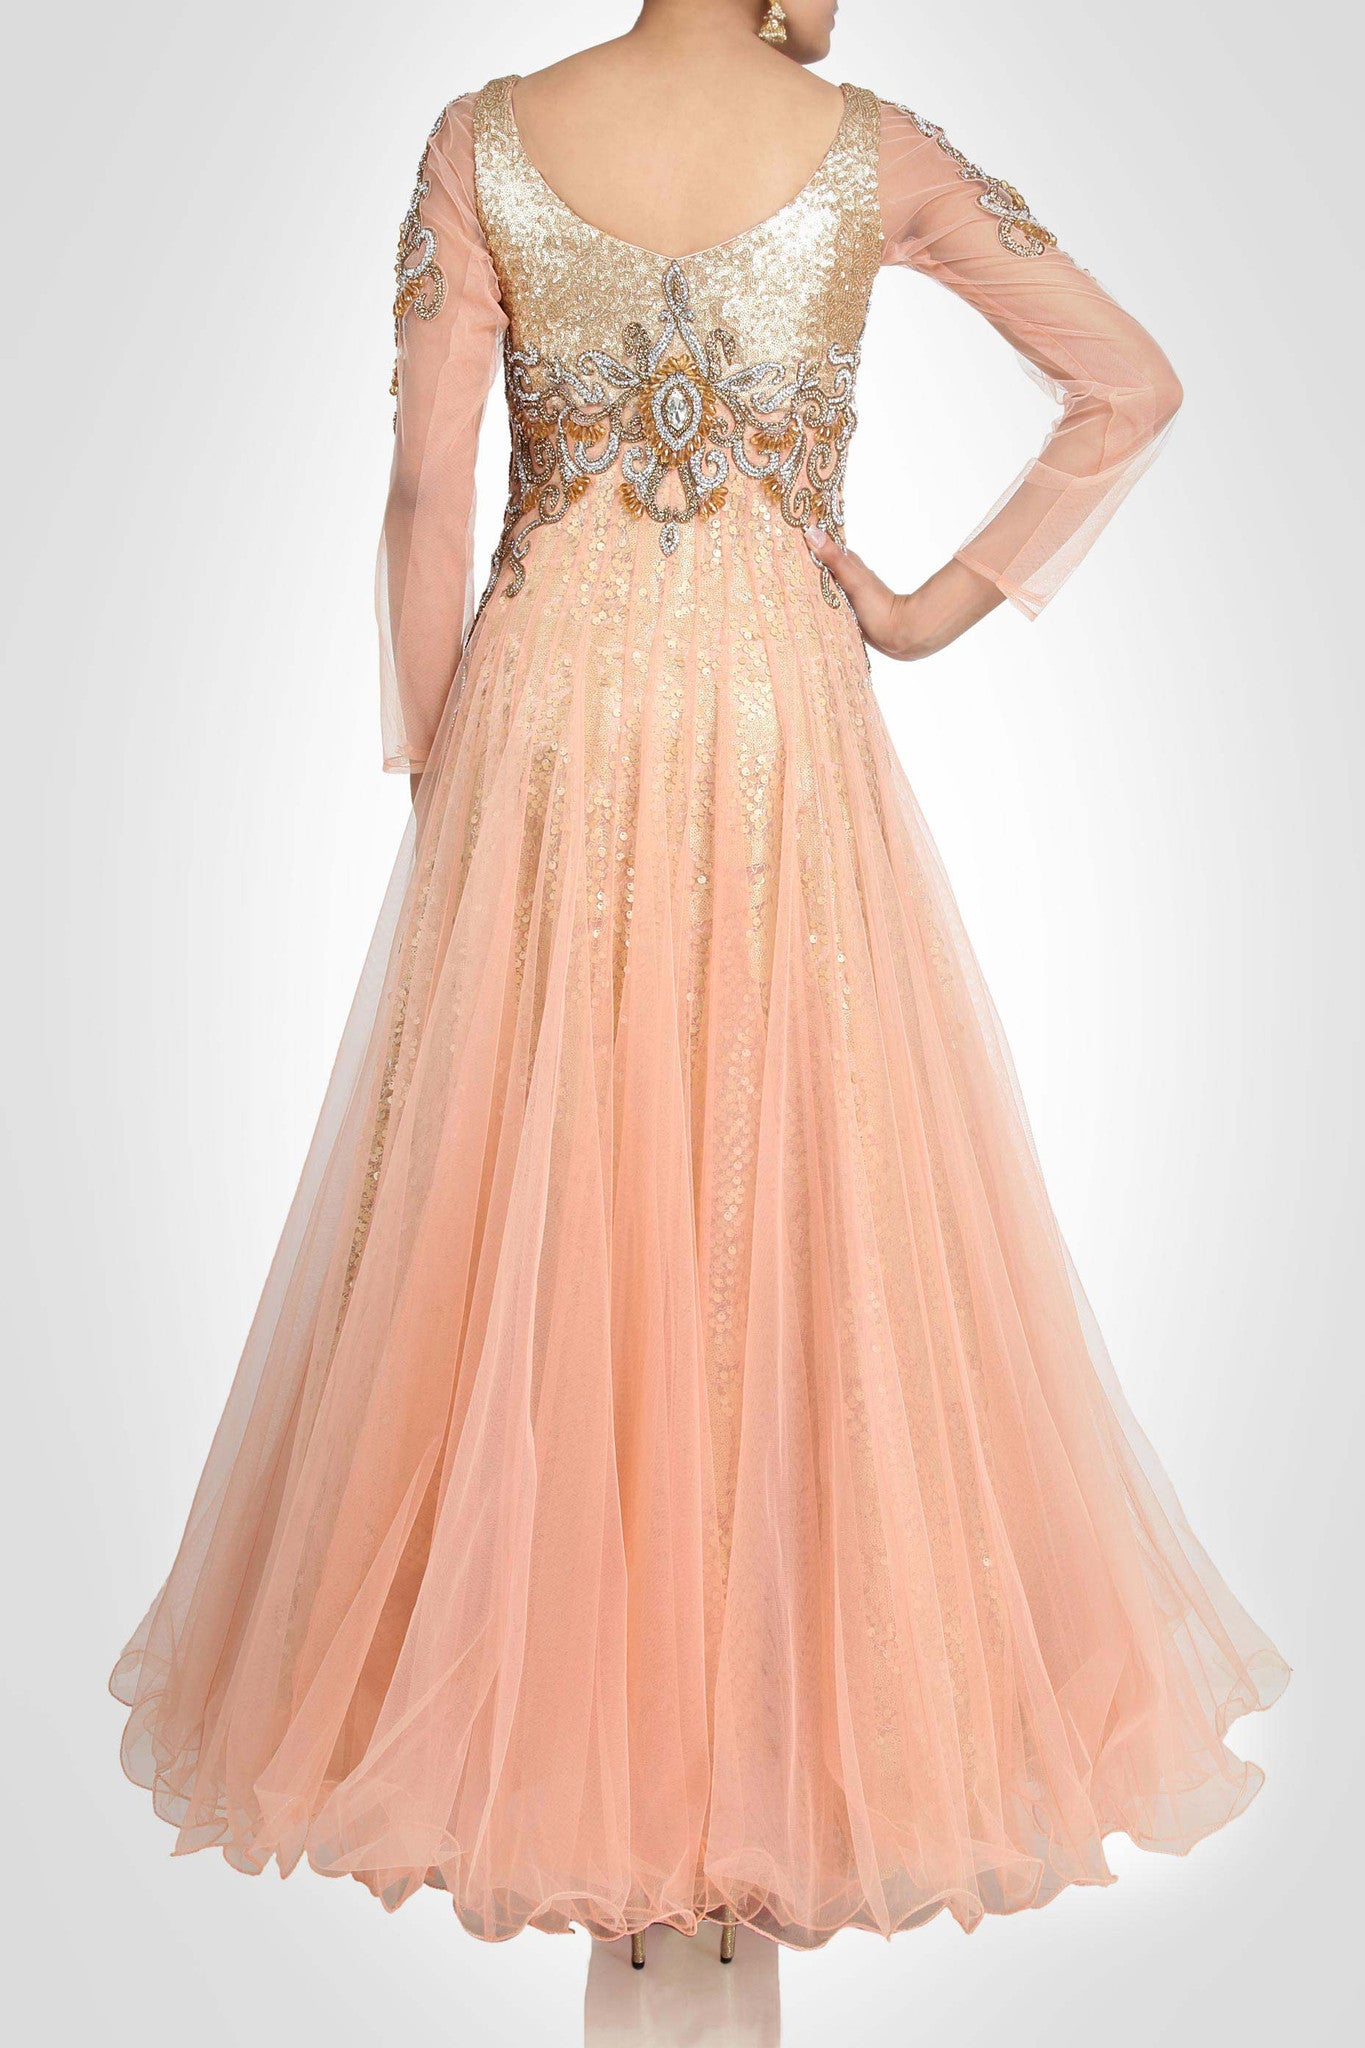 Peach color sequin gown